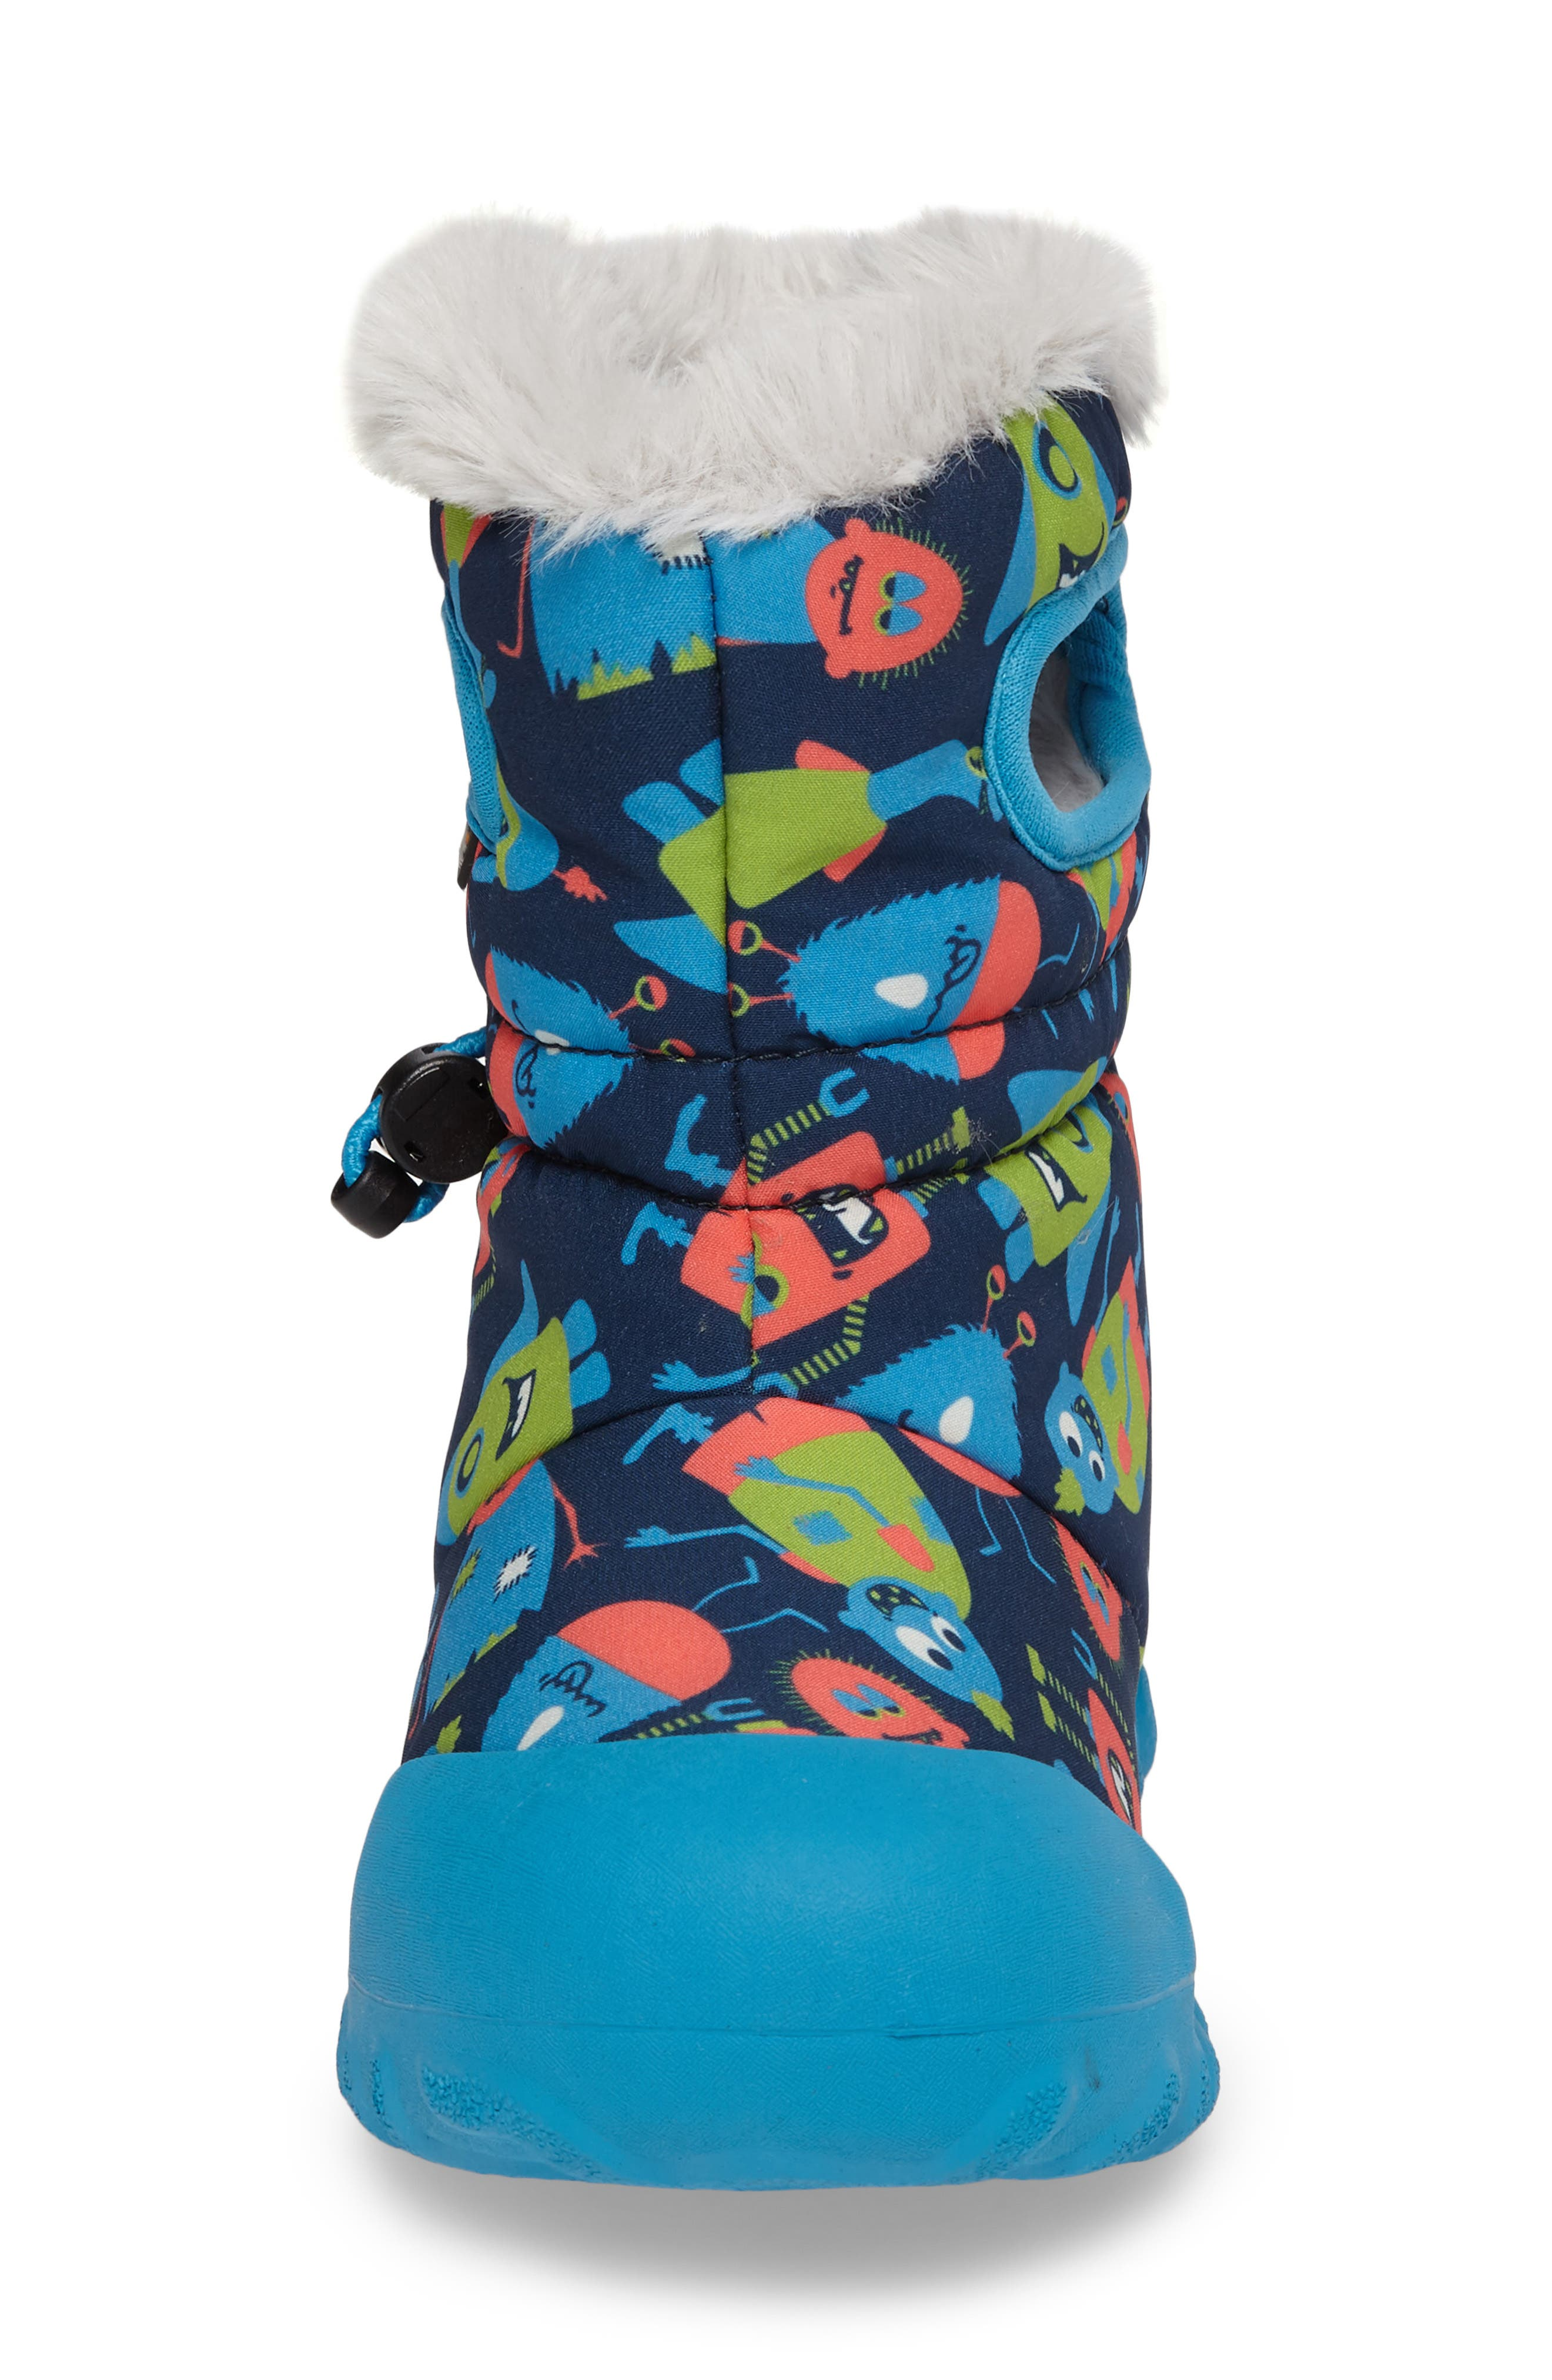 Alternate Image 4  - Bogs B-MOC Monsters Waterproof Insulated Faux Fur Boot (Toddler & Little Kid)